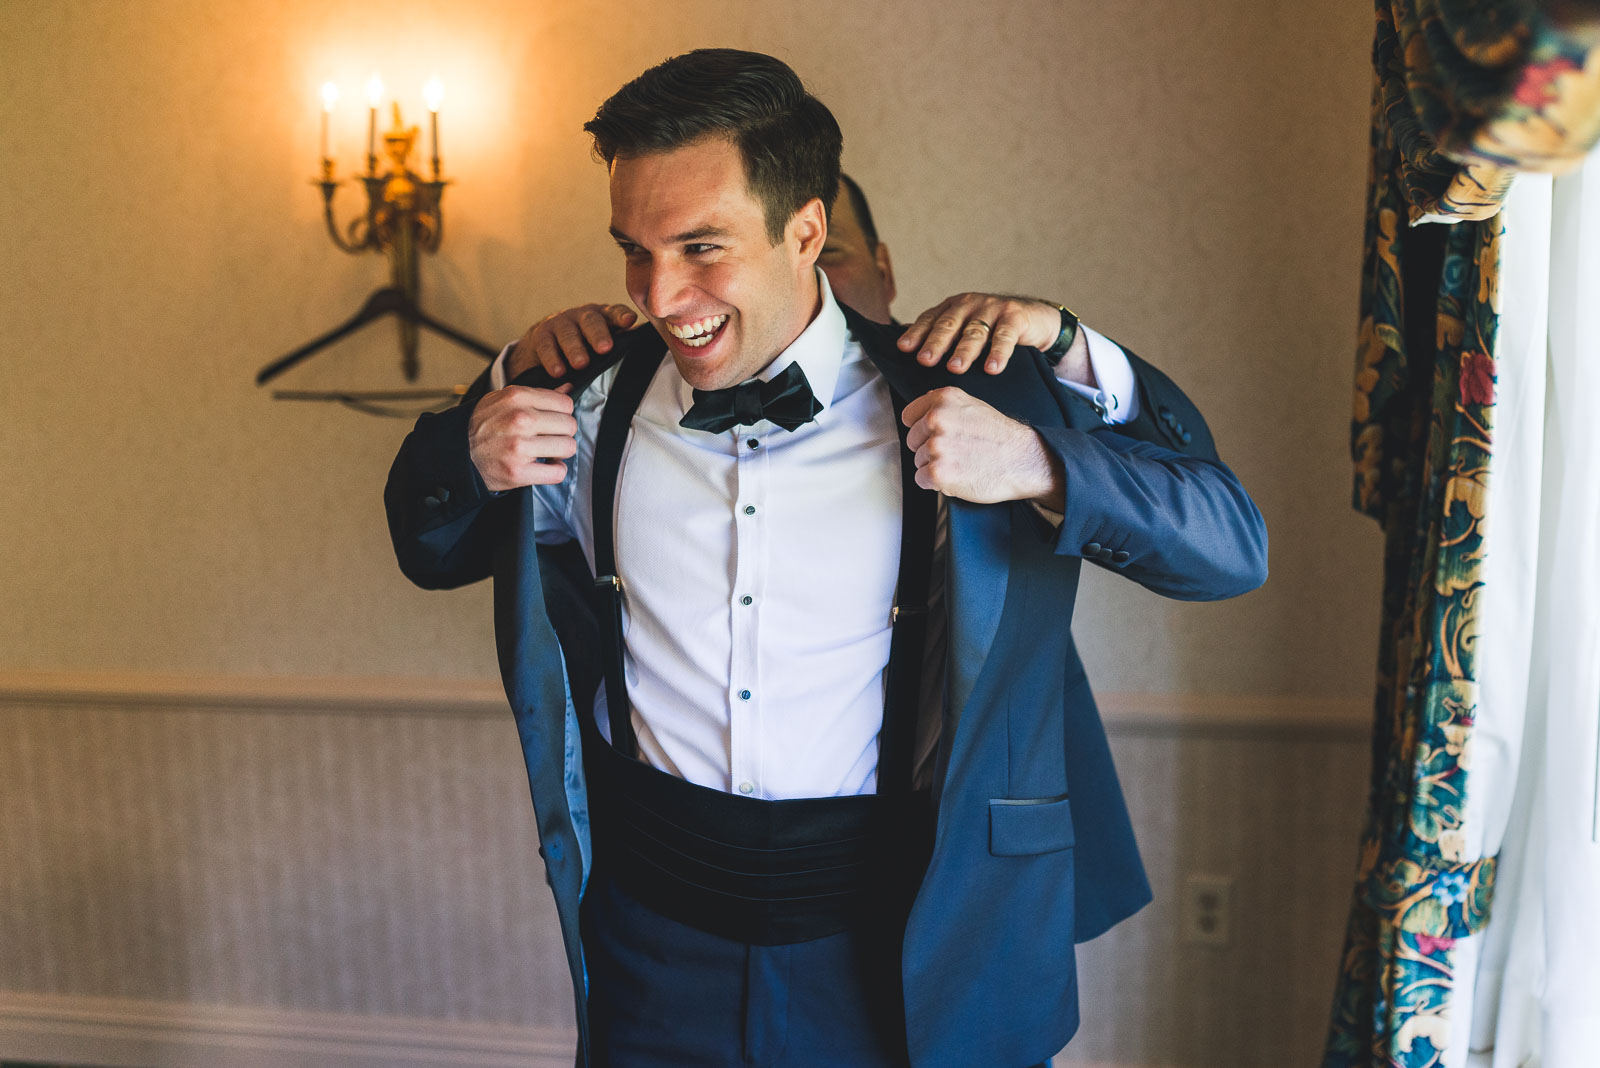 Groom gets Jacket on